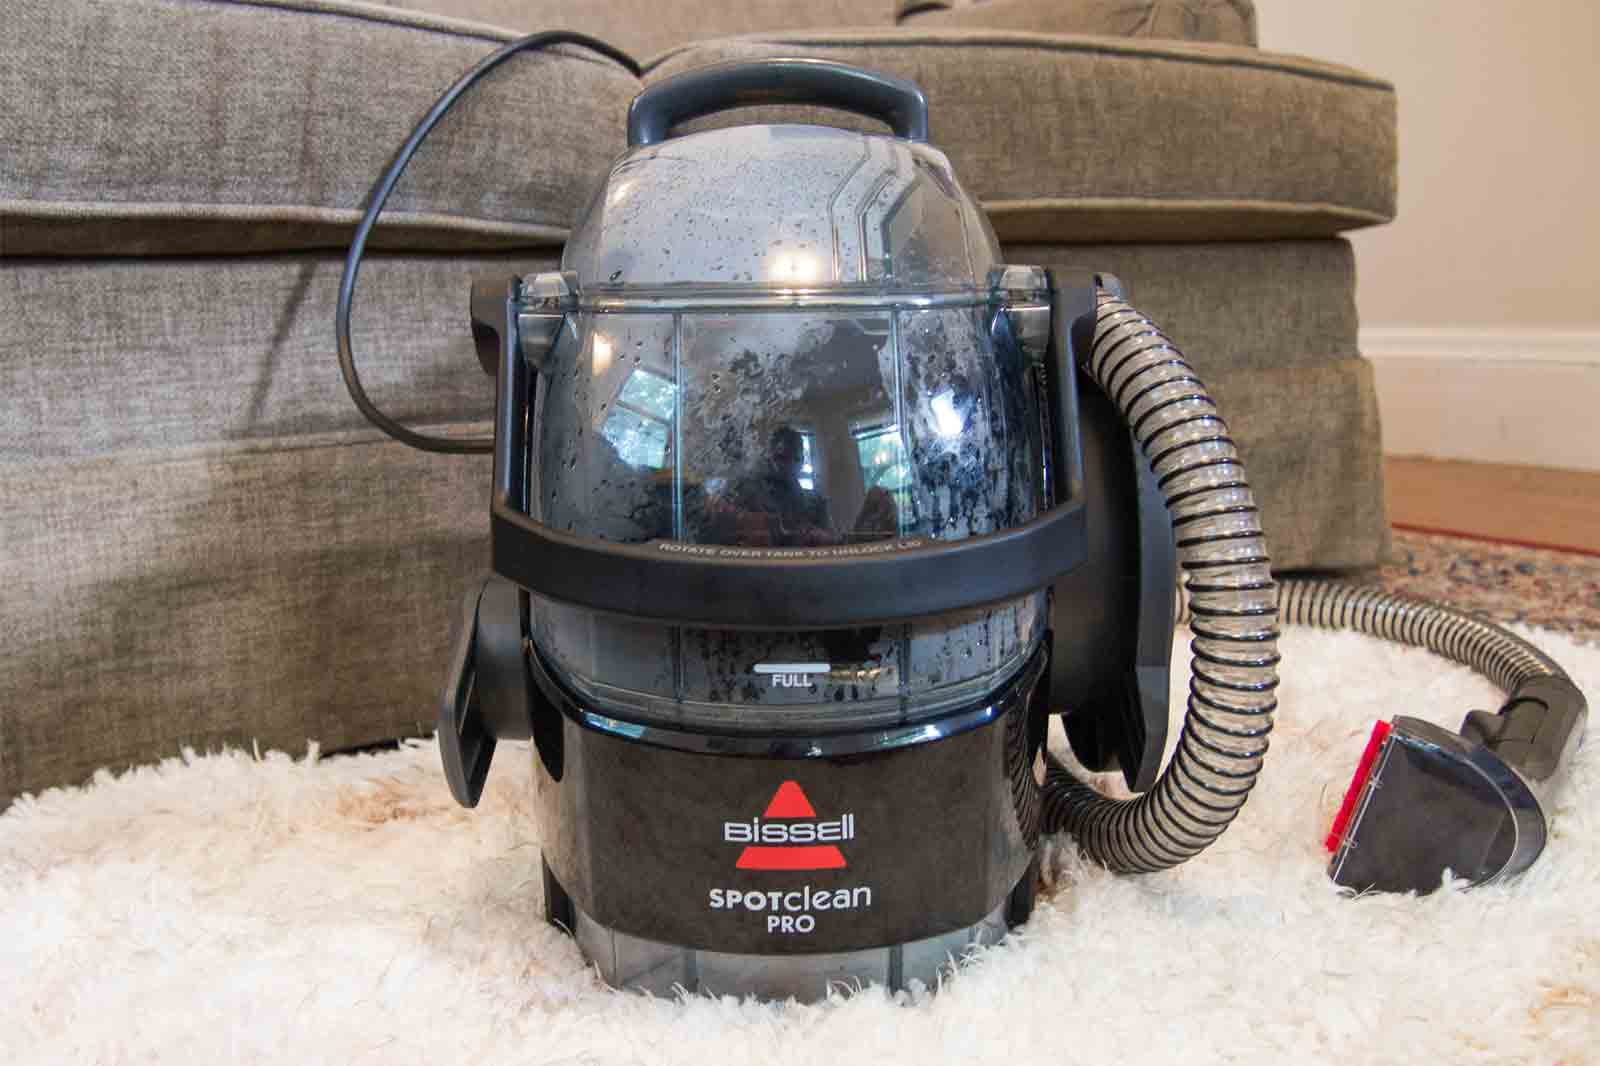 The best portable carpet and upholstery cleaner